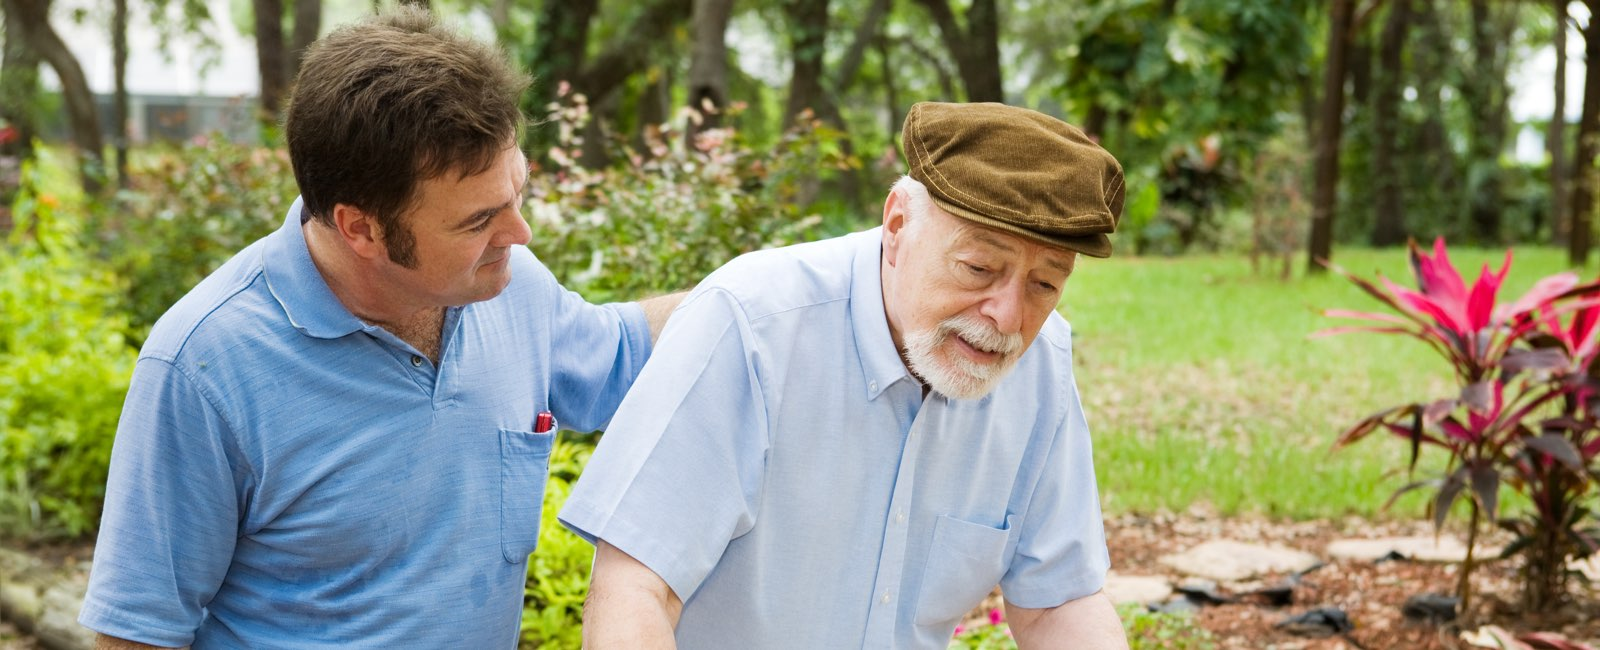 Importance of Companion Care for Home-Bound Seniors